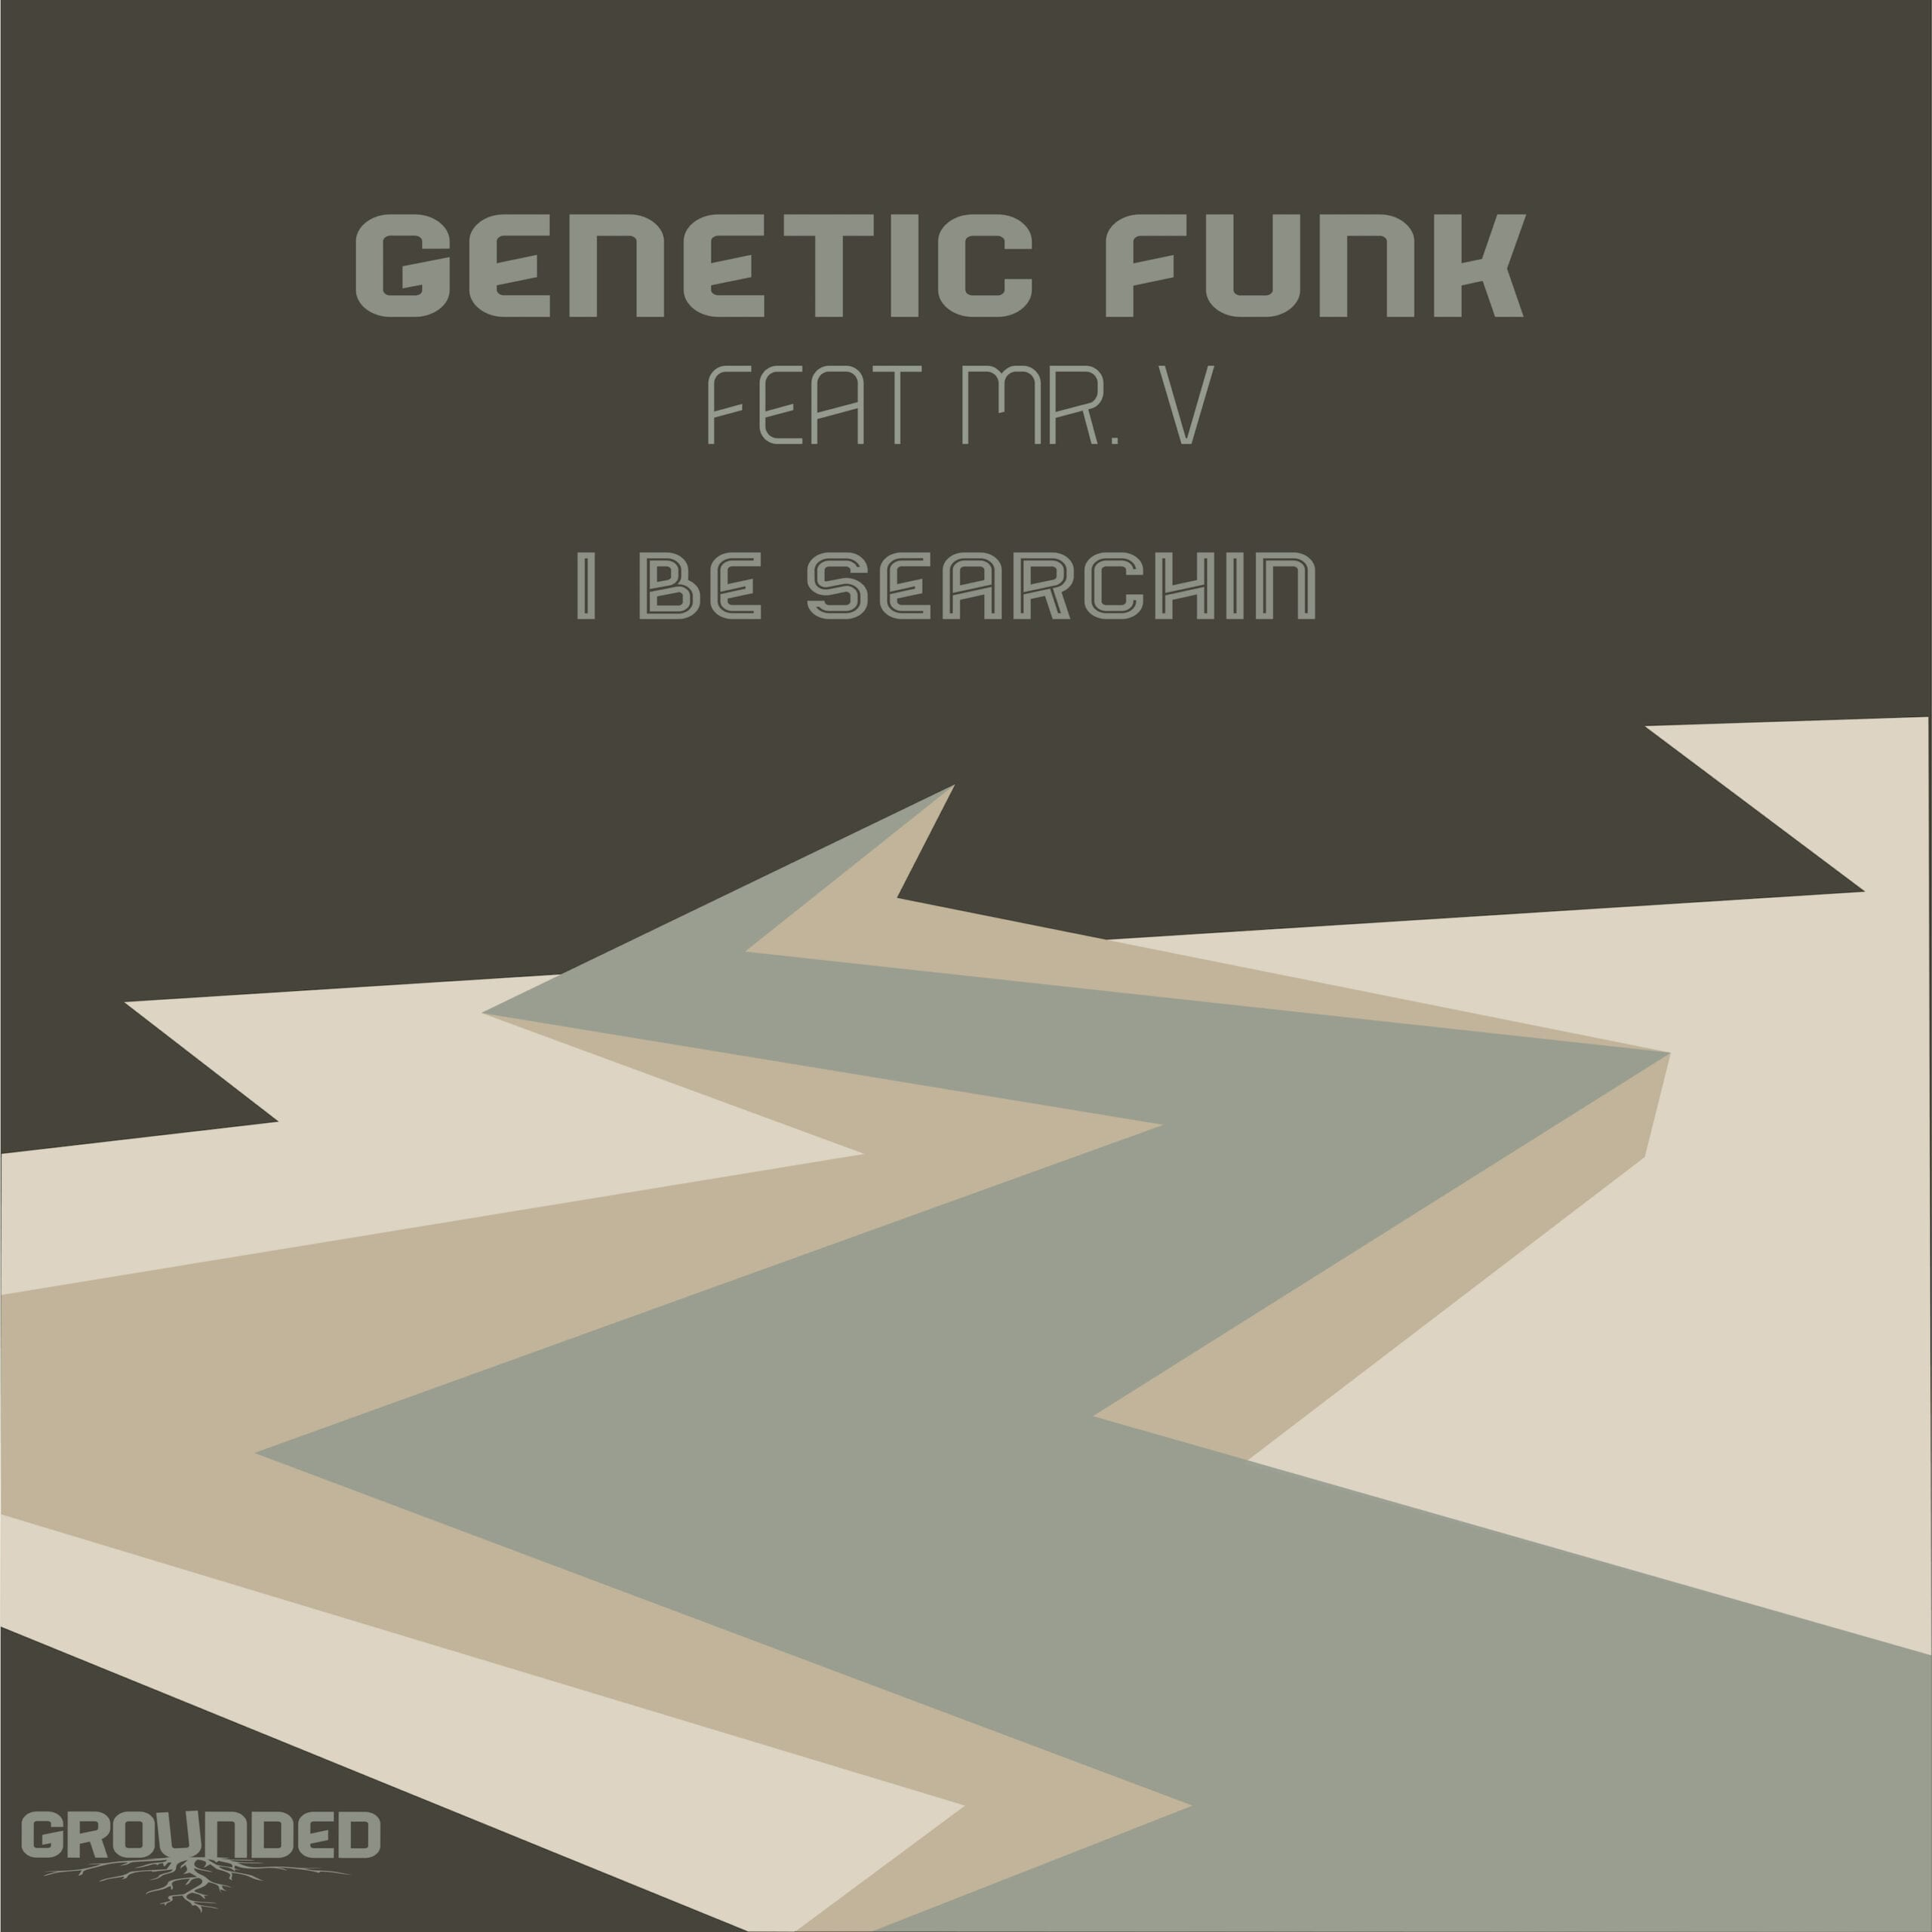 Genetic Funk feat. Mr. V 'I Be Searchin' Grounded Records